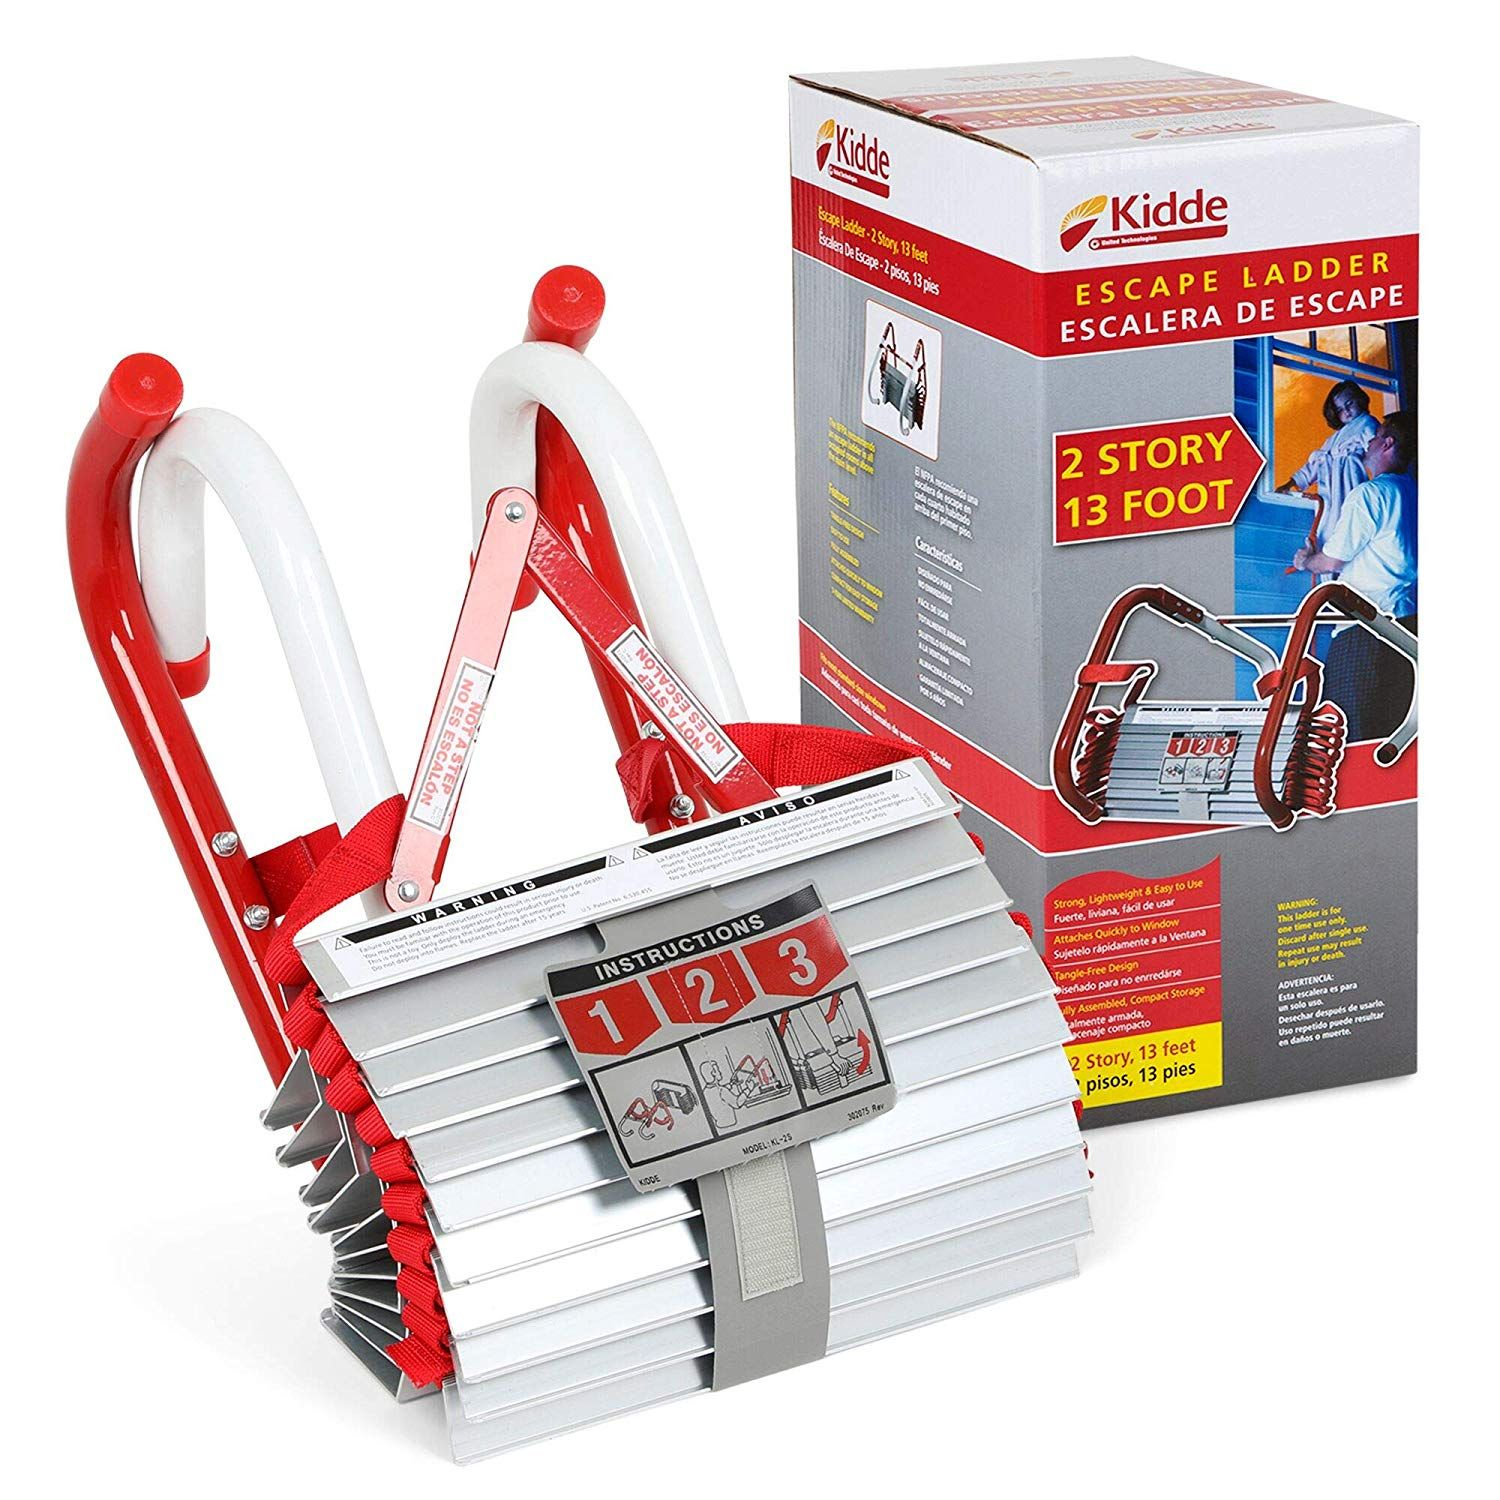 Kidde 468093 Kl 2s Two Story Fire Escape Ladder With Anti Slip Rungs 13 Foot Escape Ladder Fire Escape Ladder Fire Escape